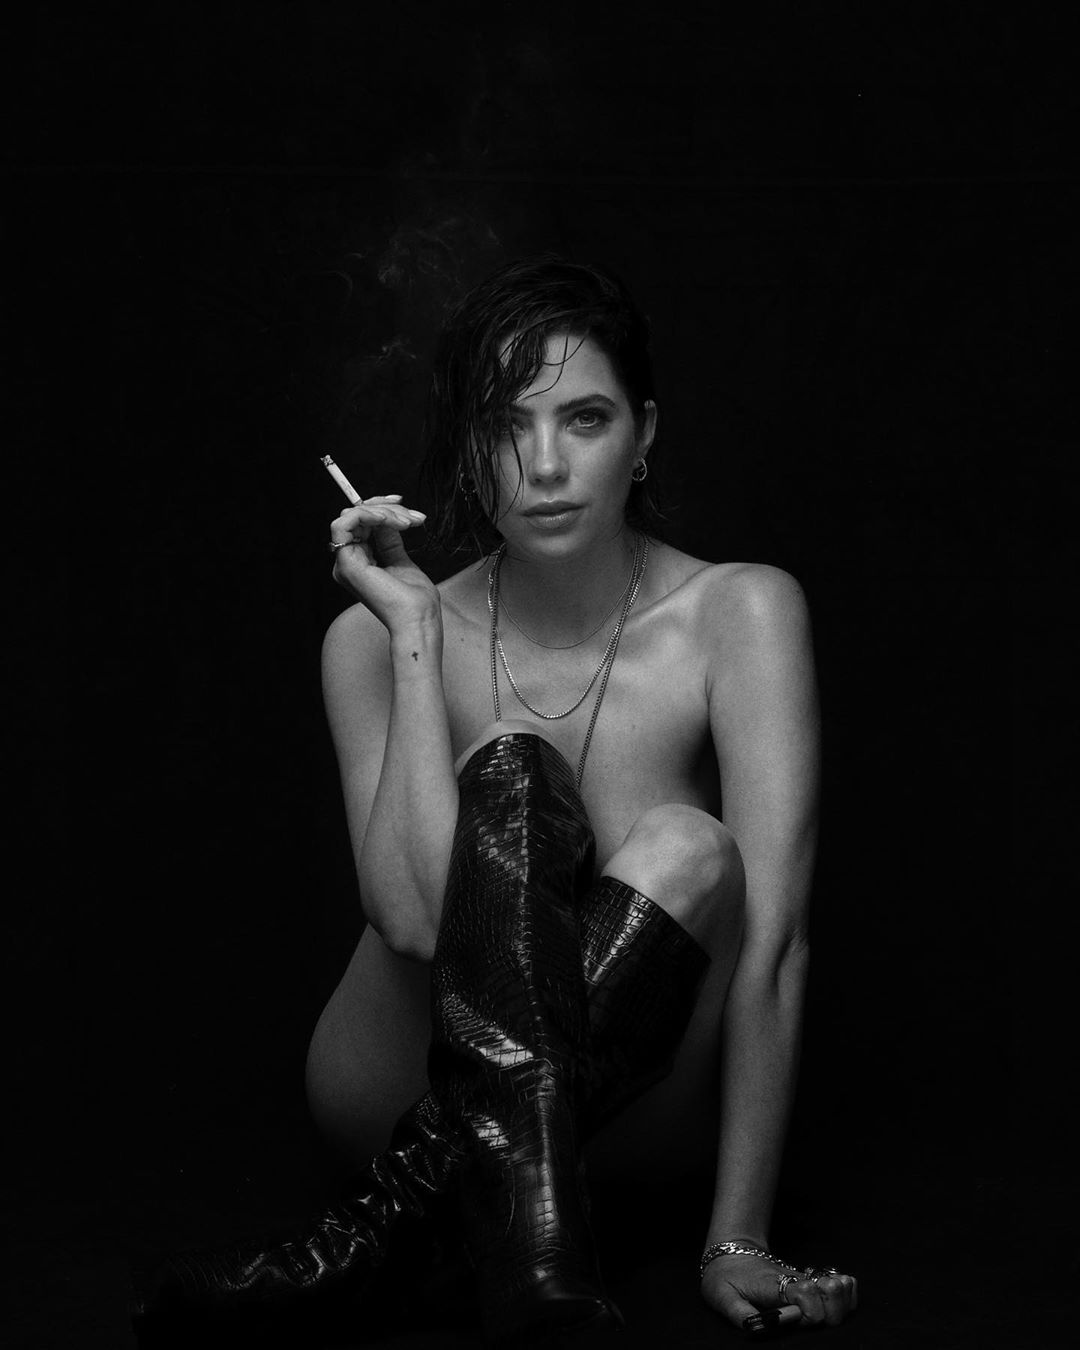 Ashley Benson poses nude in monochrome instagram photo